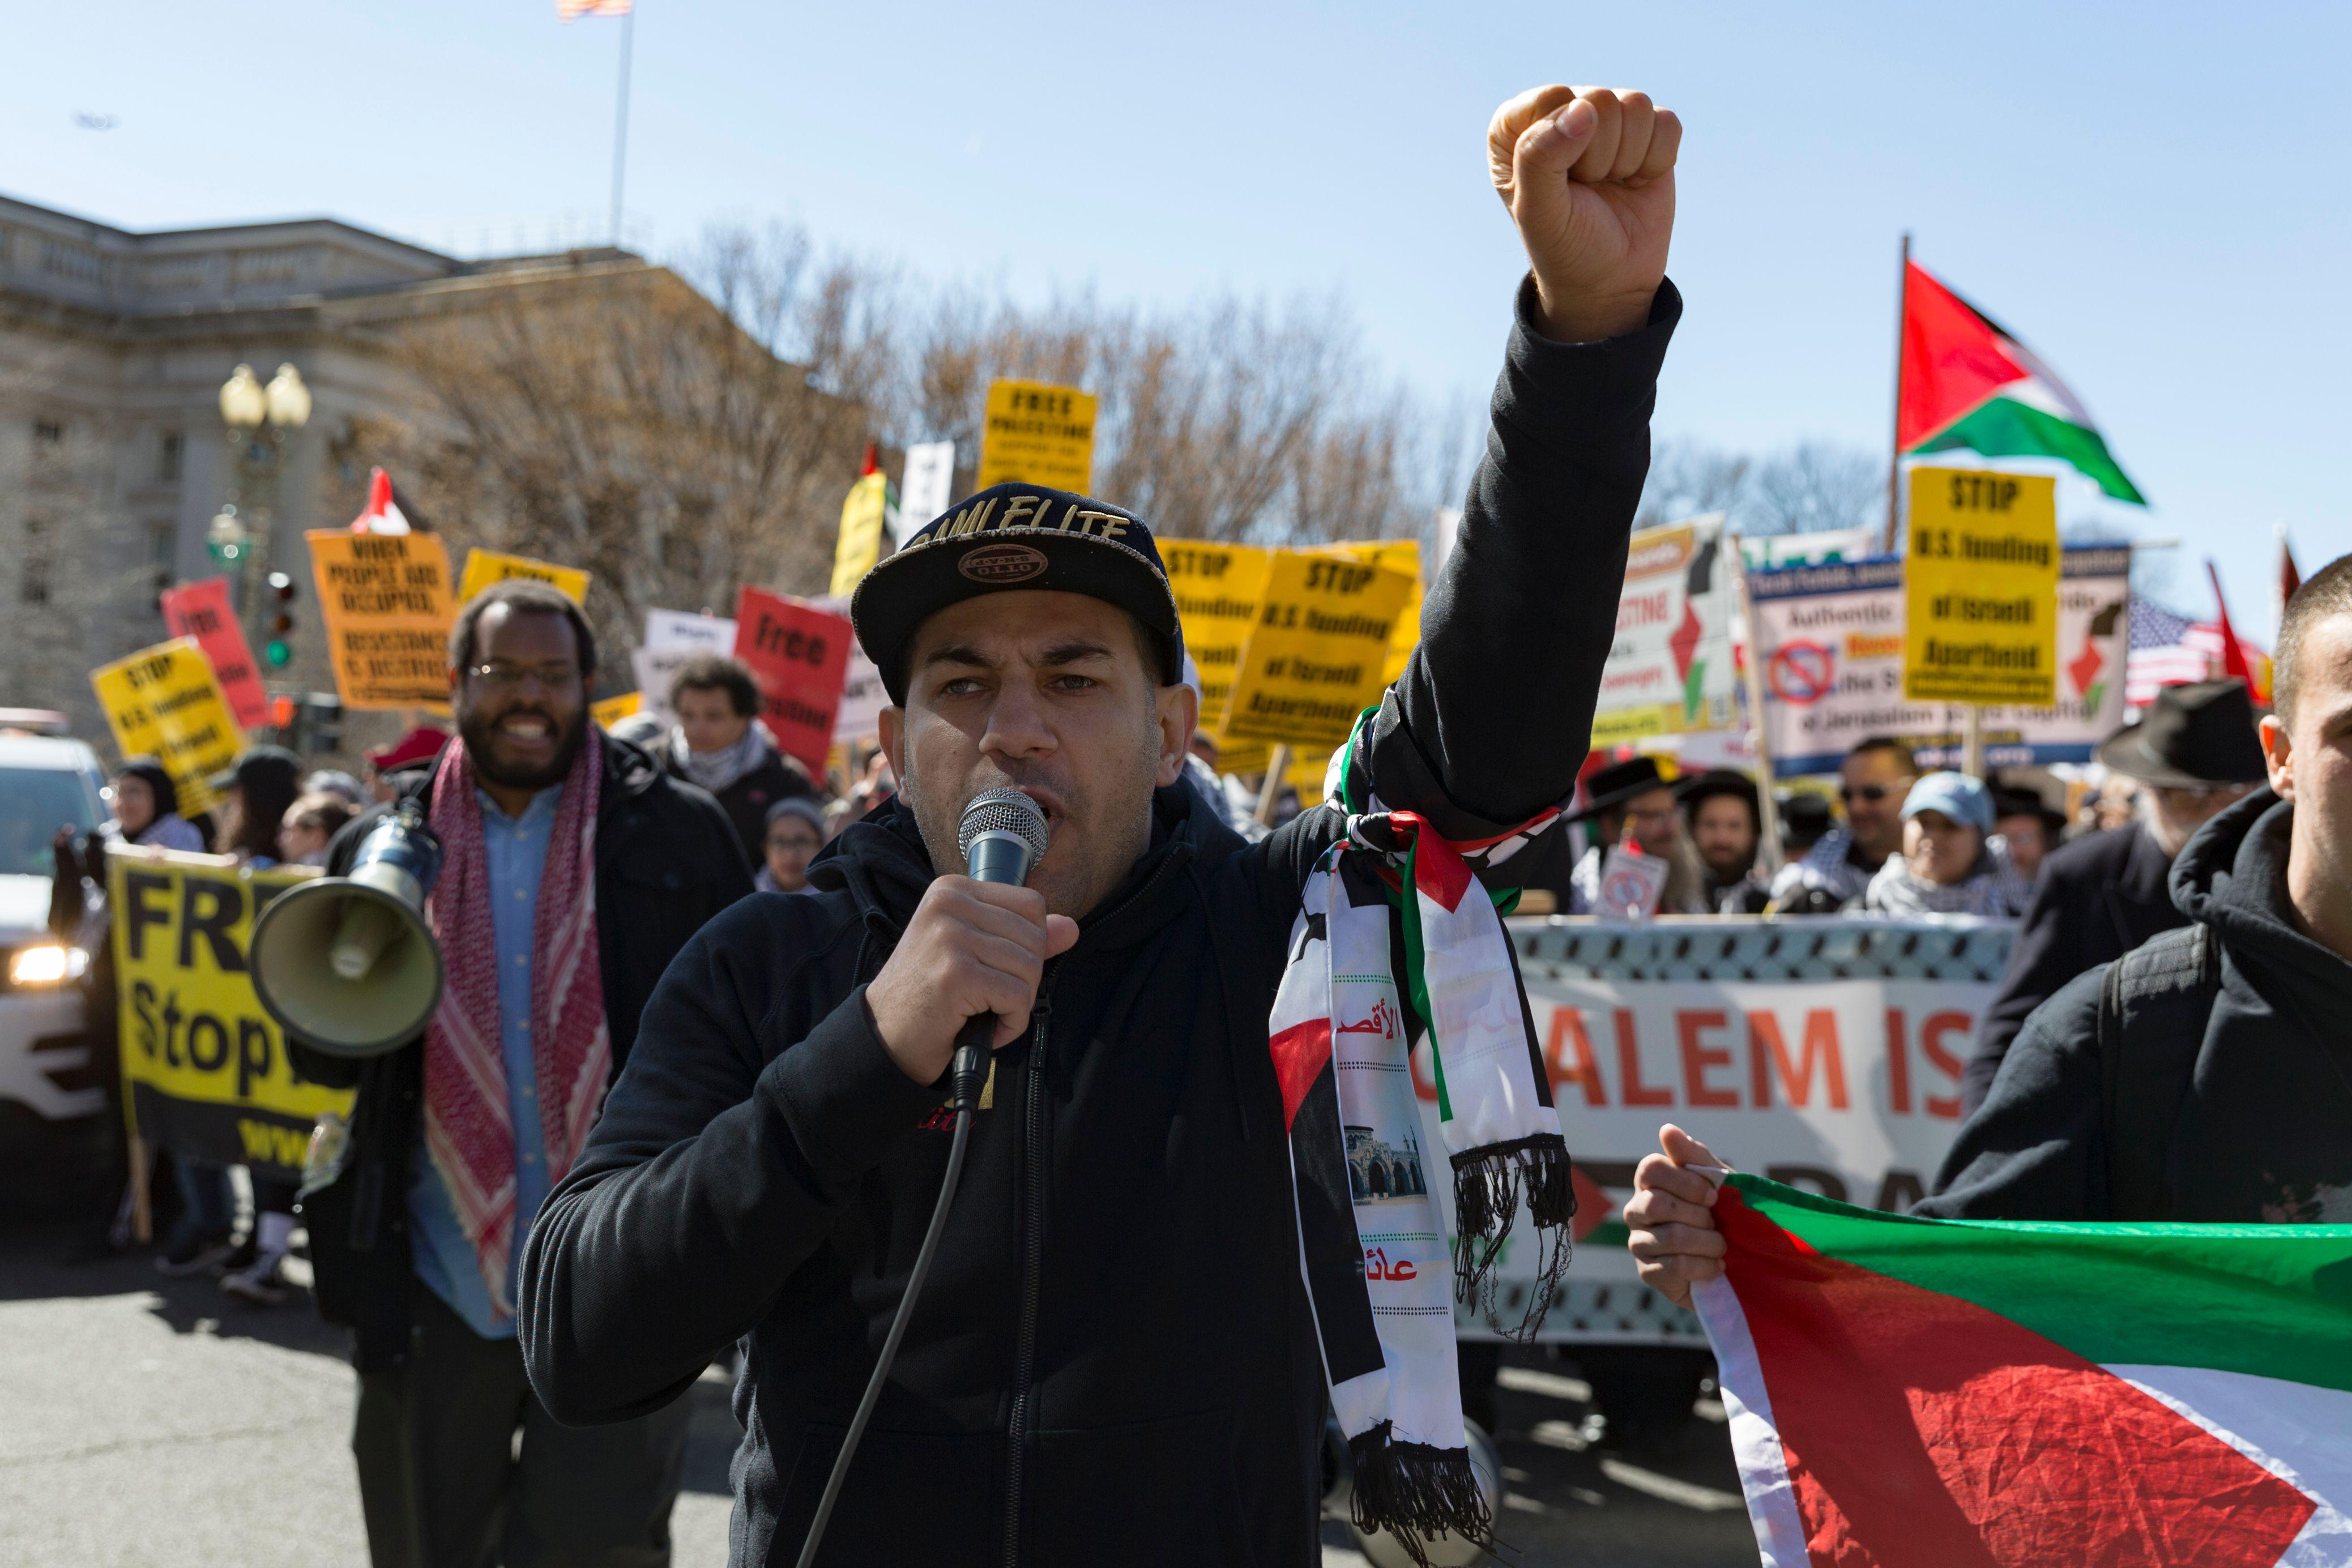 """A demonstrator raises his fist and chants """"free Palestine"""" at a protest. The crowd behind him marches with signs calling for an independent Palestinian state."""